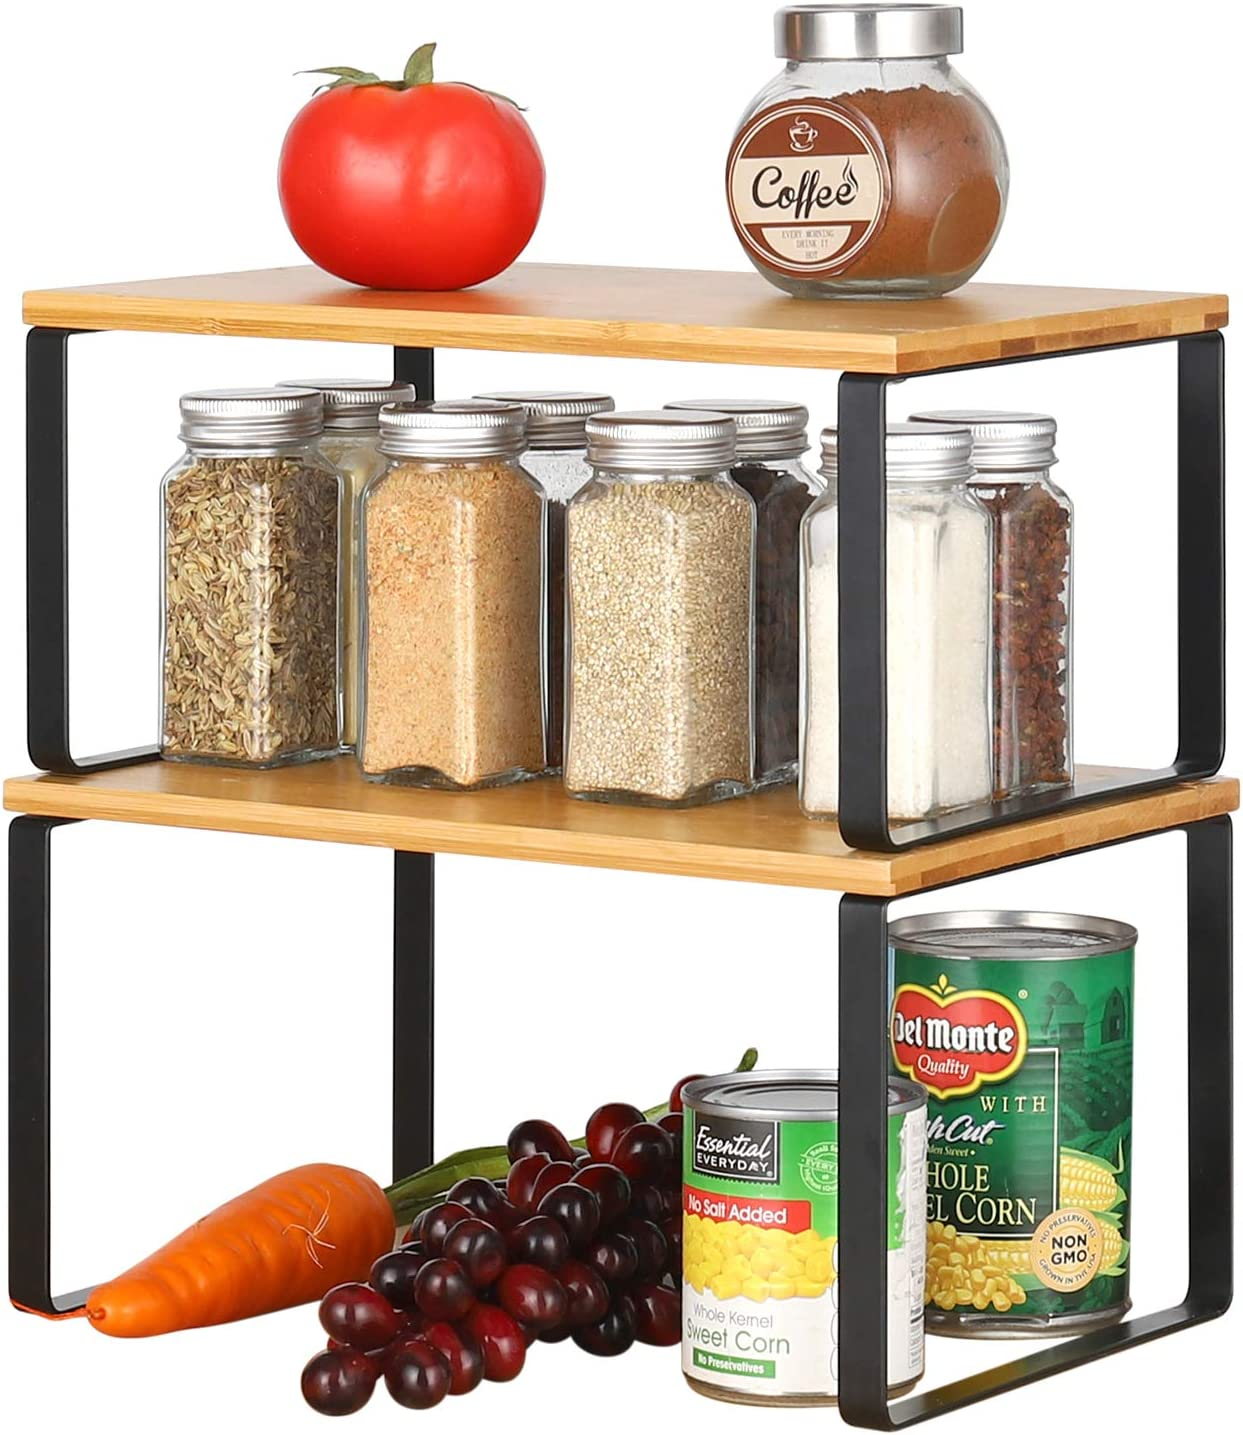 BTY Cabinet Shelf Organizer, Kitchen Counter Shelves Spice Racks 2 Pack Extendable & Stackable Counter Top Organizers Shelves for Kitchen, Cabinet, Table, Metal and Bamboo (Black)